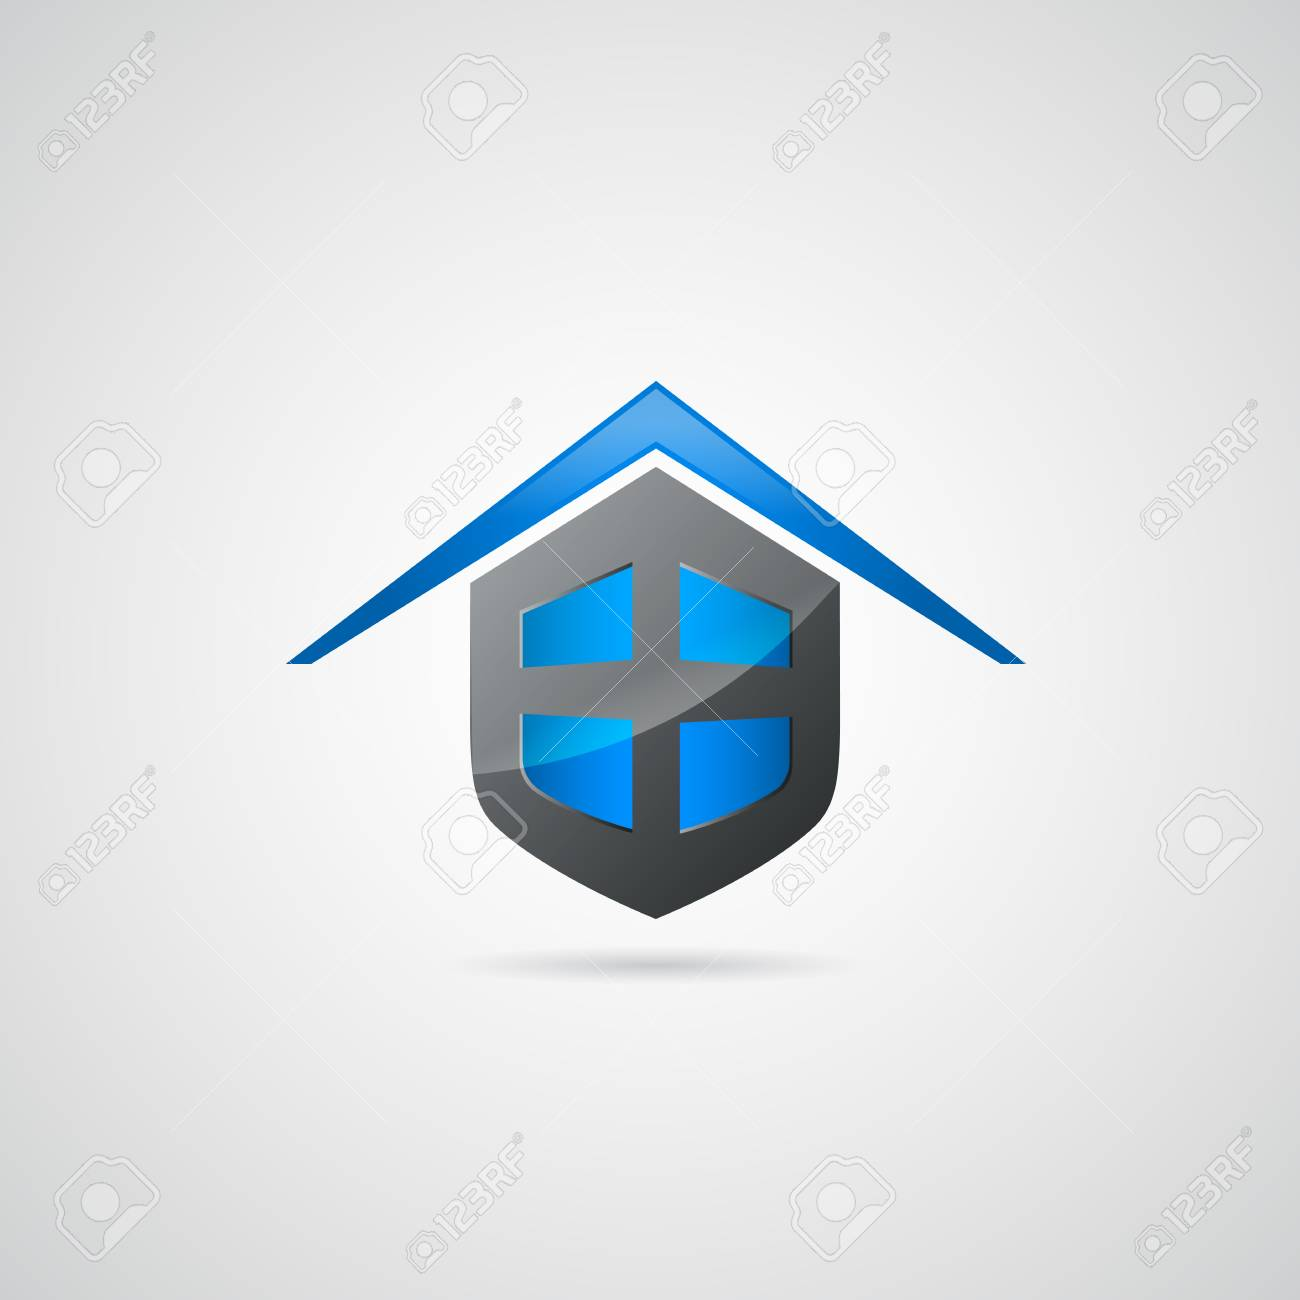 home shield symbol logo royalty free cliparts vectors and stock